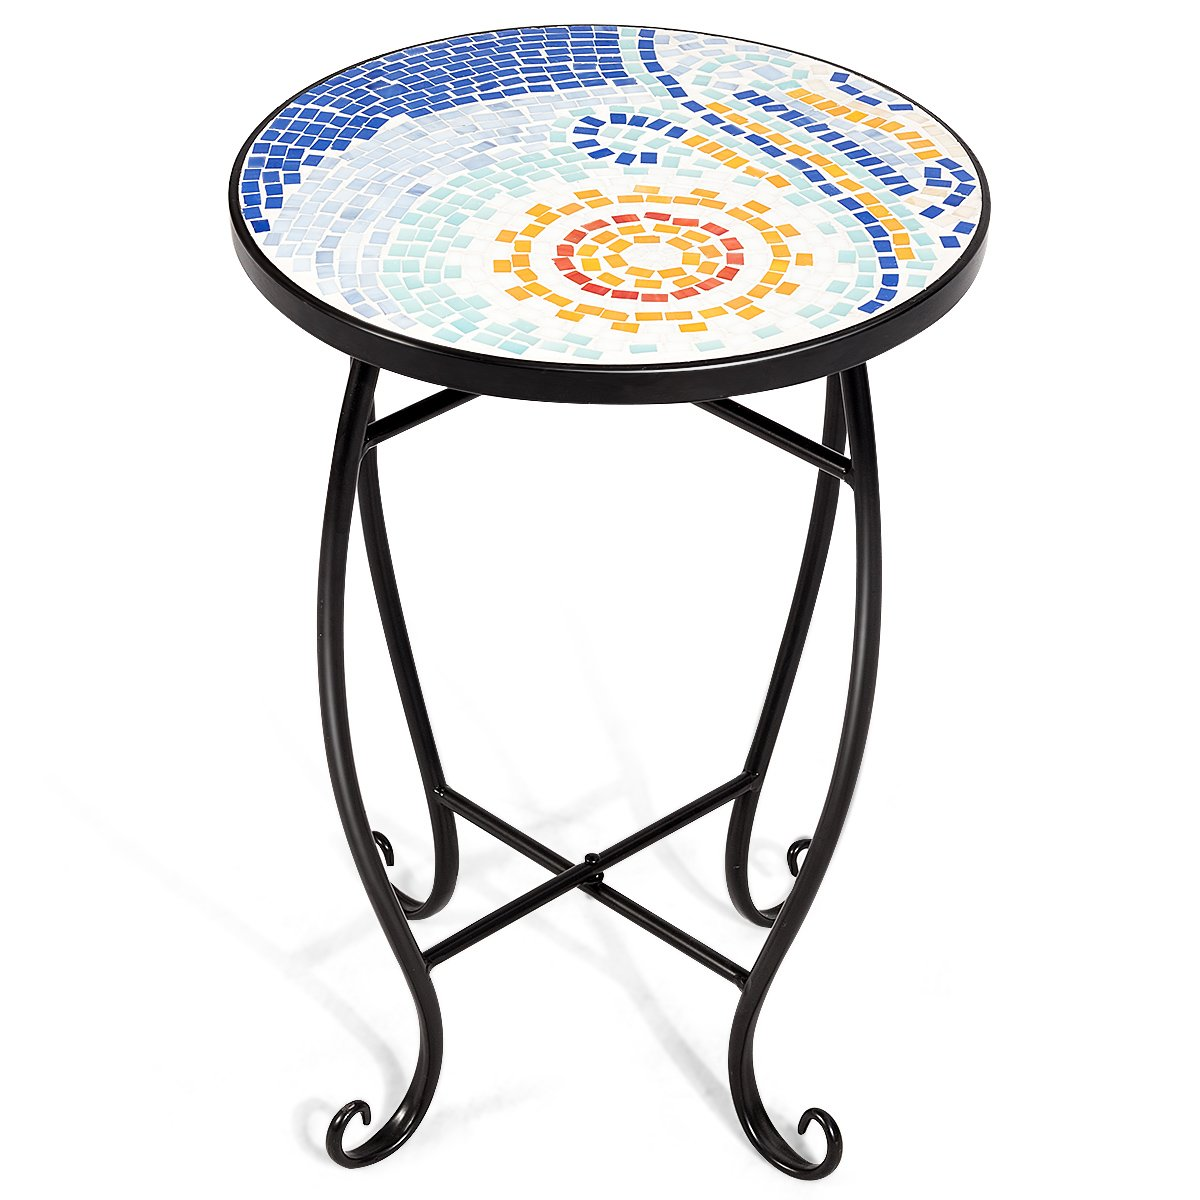 giantex mosaic round side accent table patio plant stand porch beach theme balcony back deck pool decor metal cobalt glass top indoor outdoor coffee end iphone tripod target resin